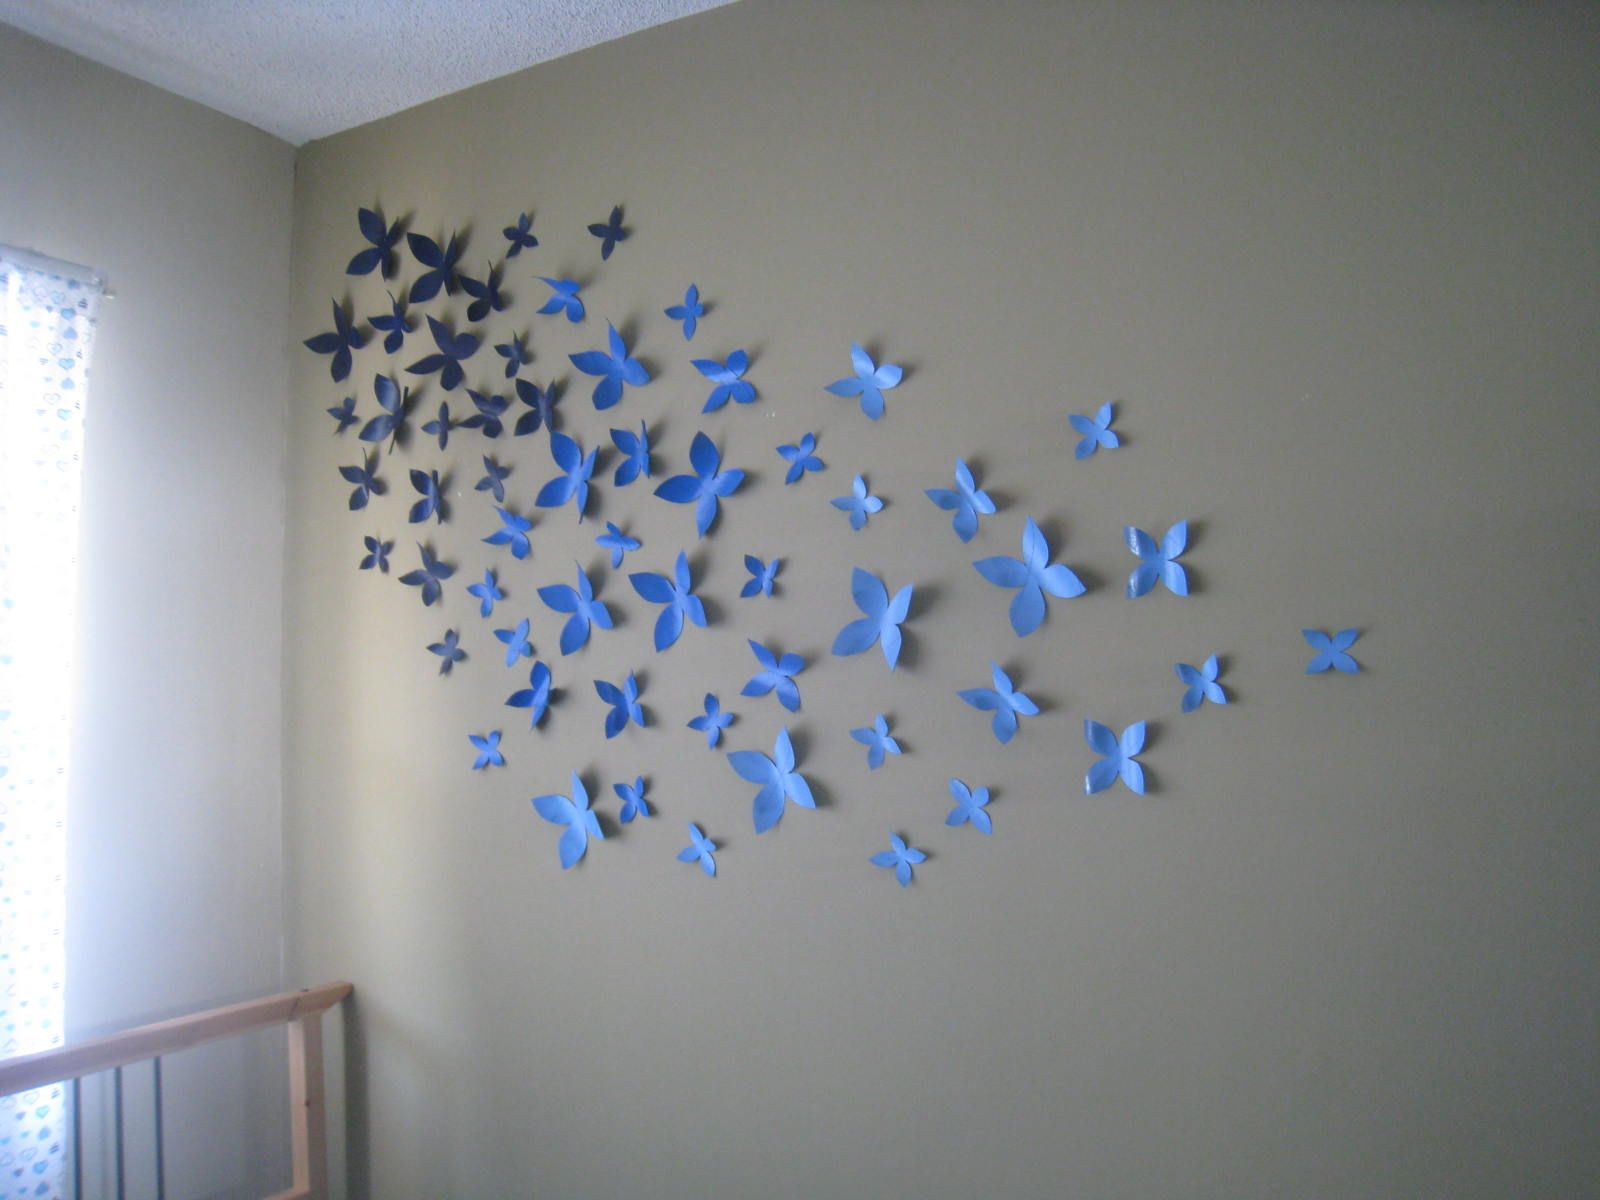 Cut up paper wall art ideas crafting is sanity hartwick dorm